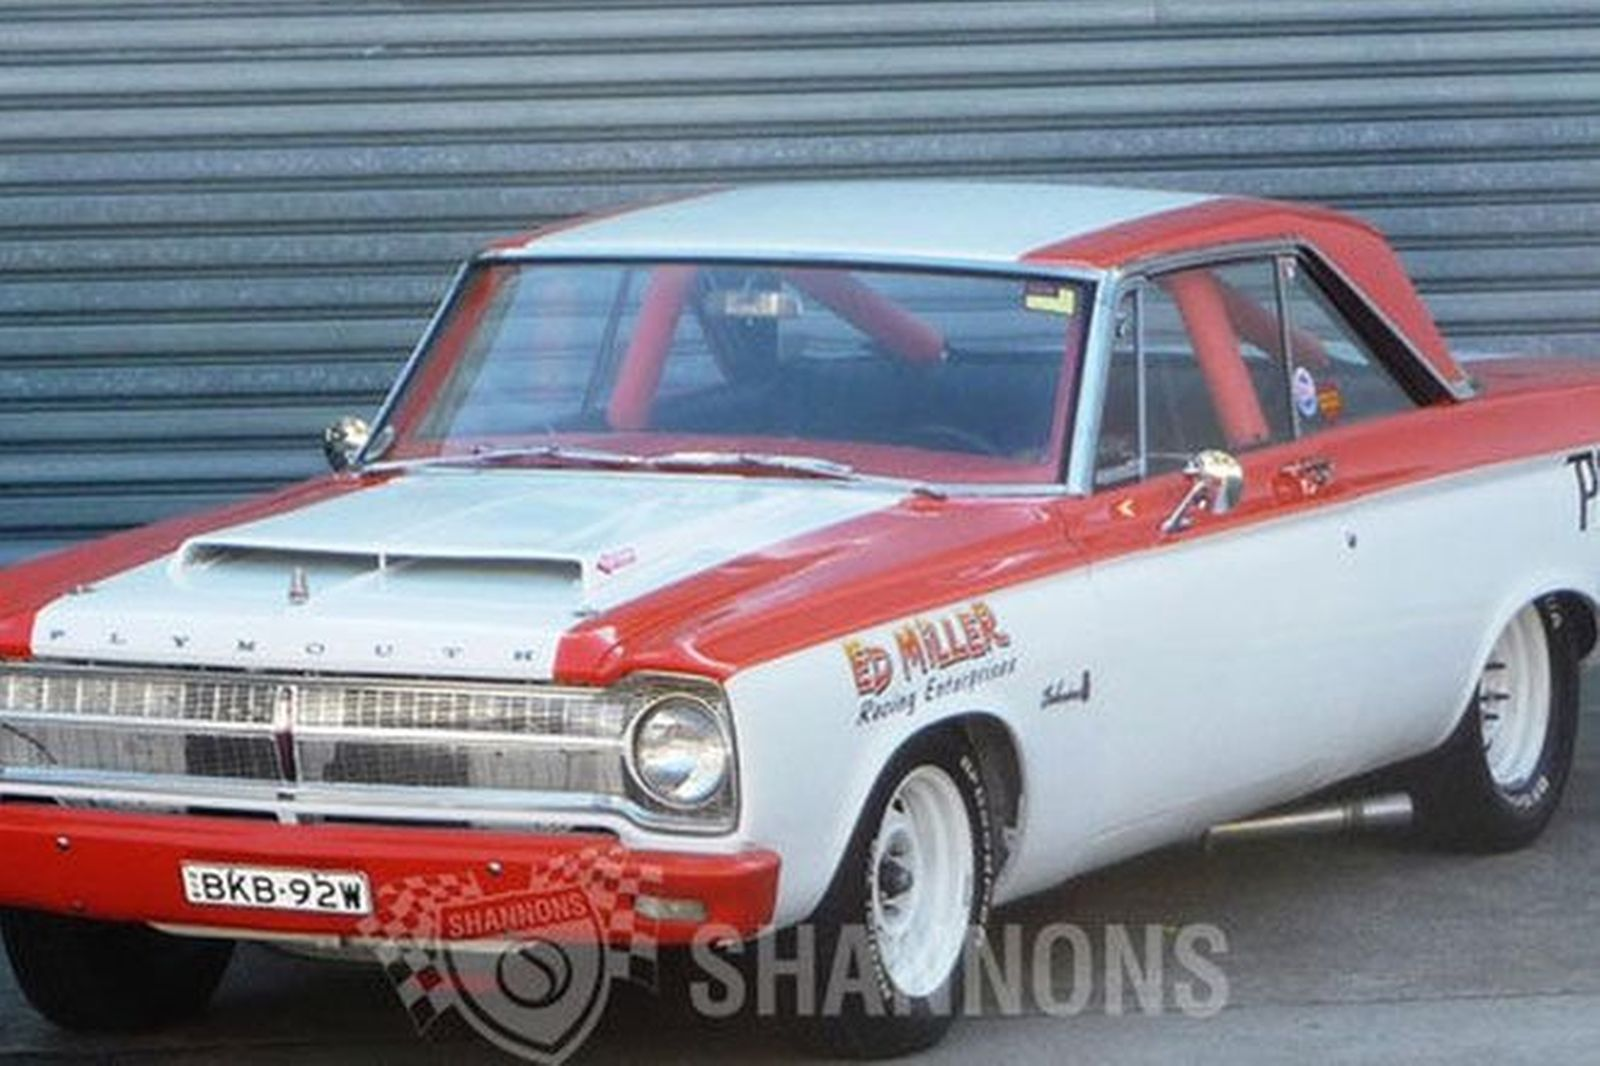 Plymouth Belvedere Ed Miller Drag Car Replica Lhd